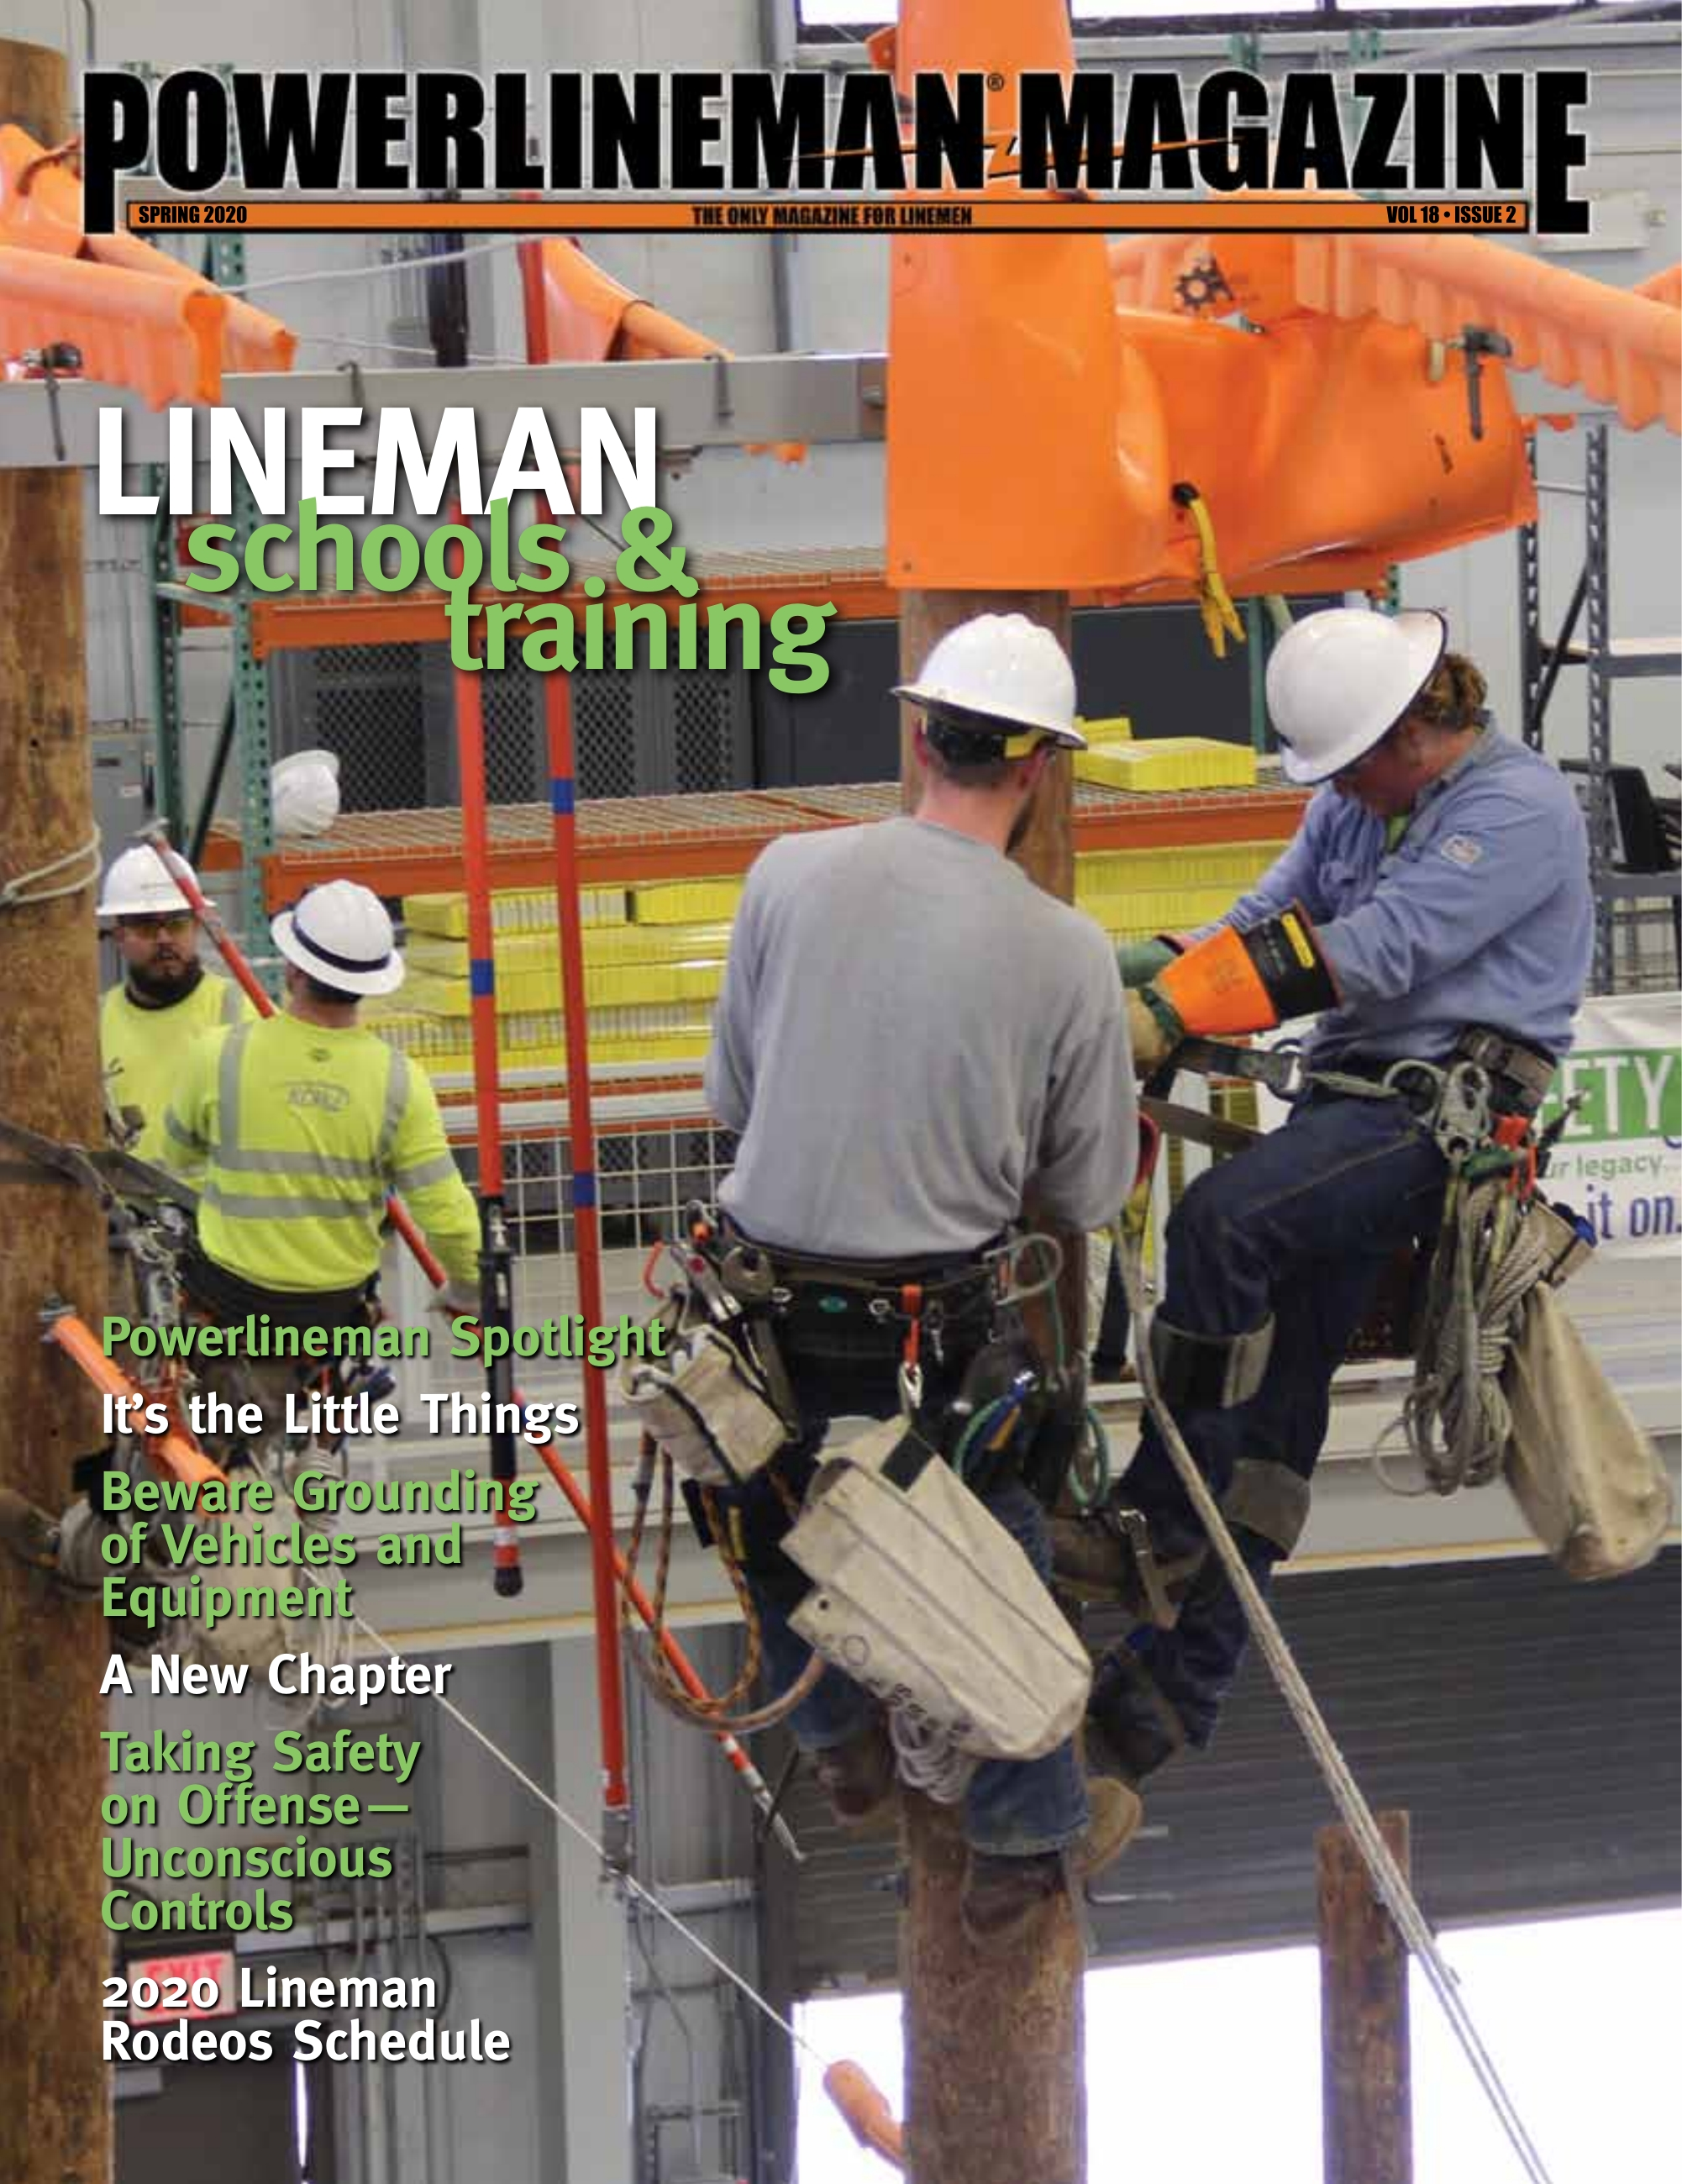 Powerlineman Magazine Spring 2020 Cover